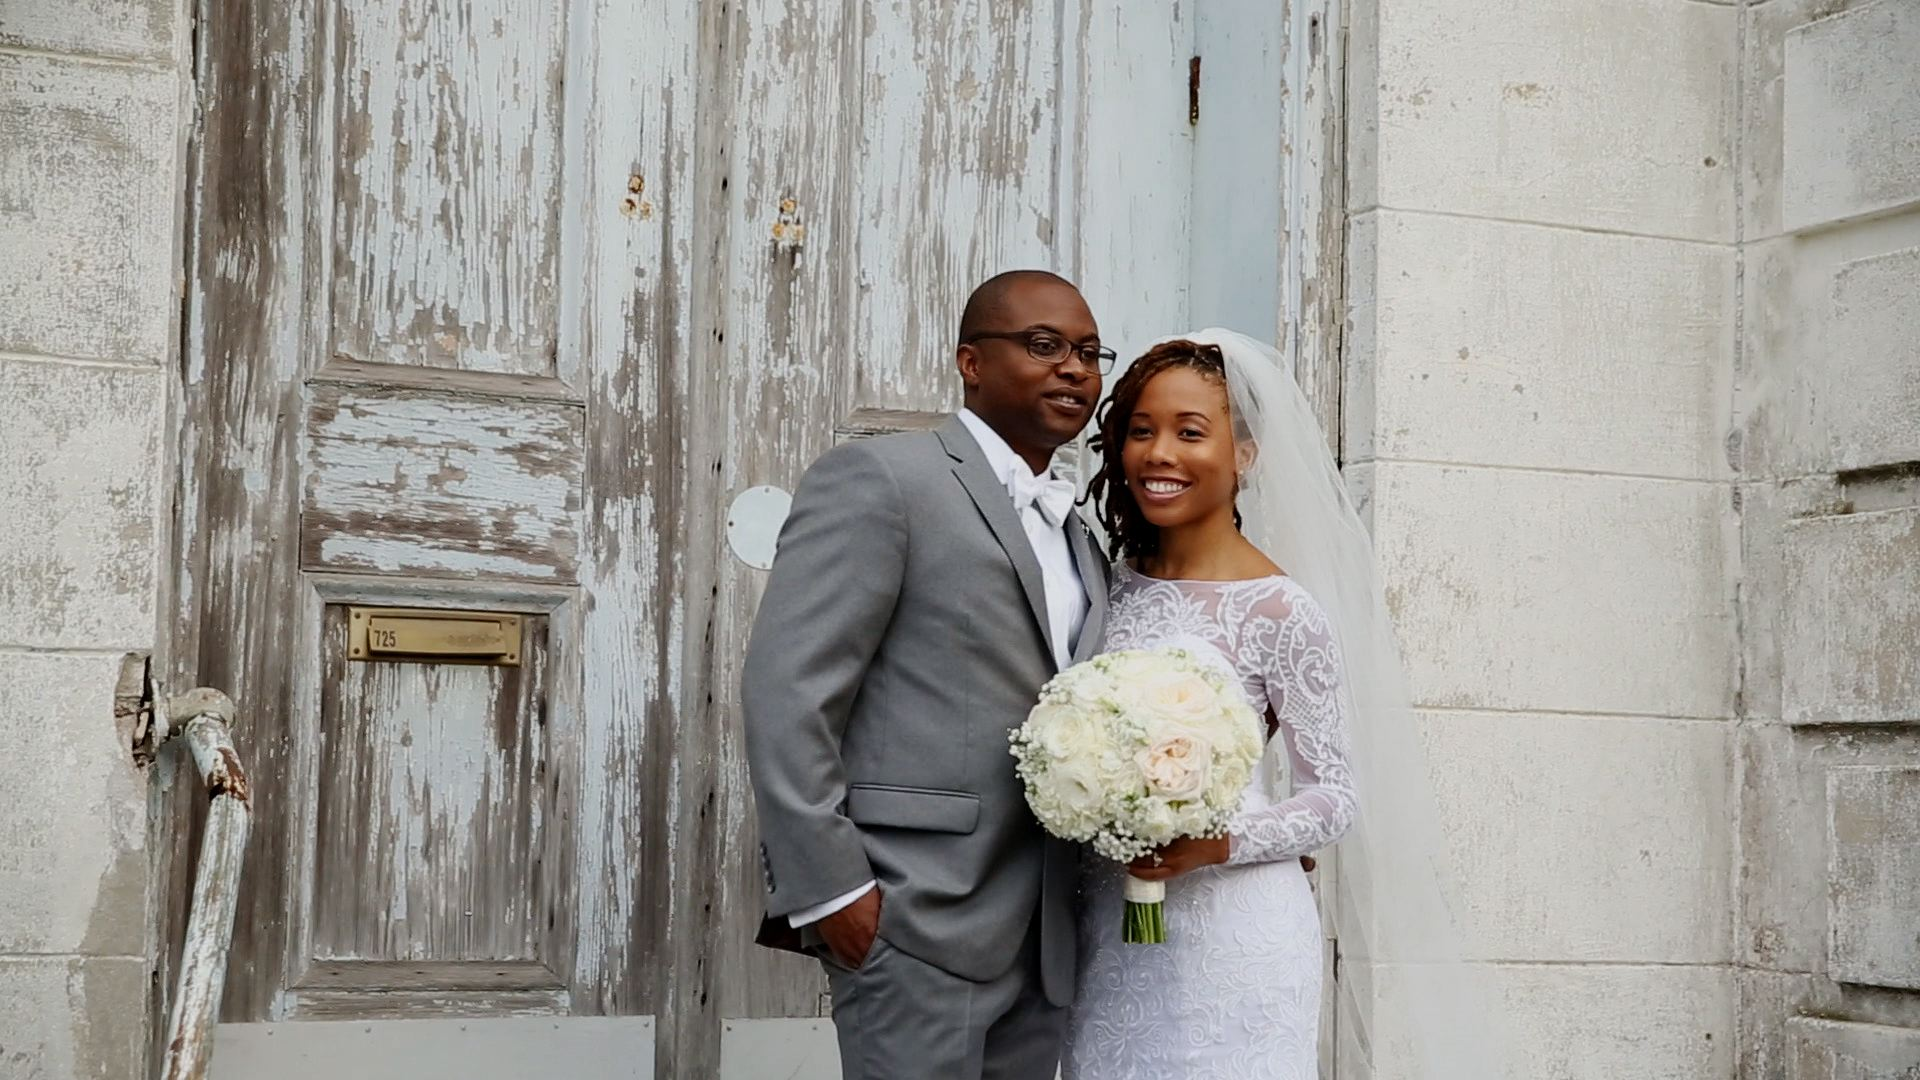 Beautiful old New Orleans doors make for great backdrops.